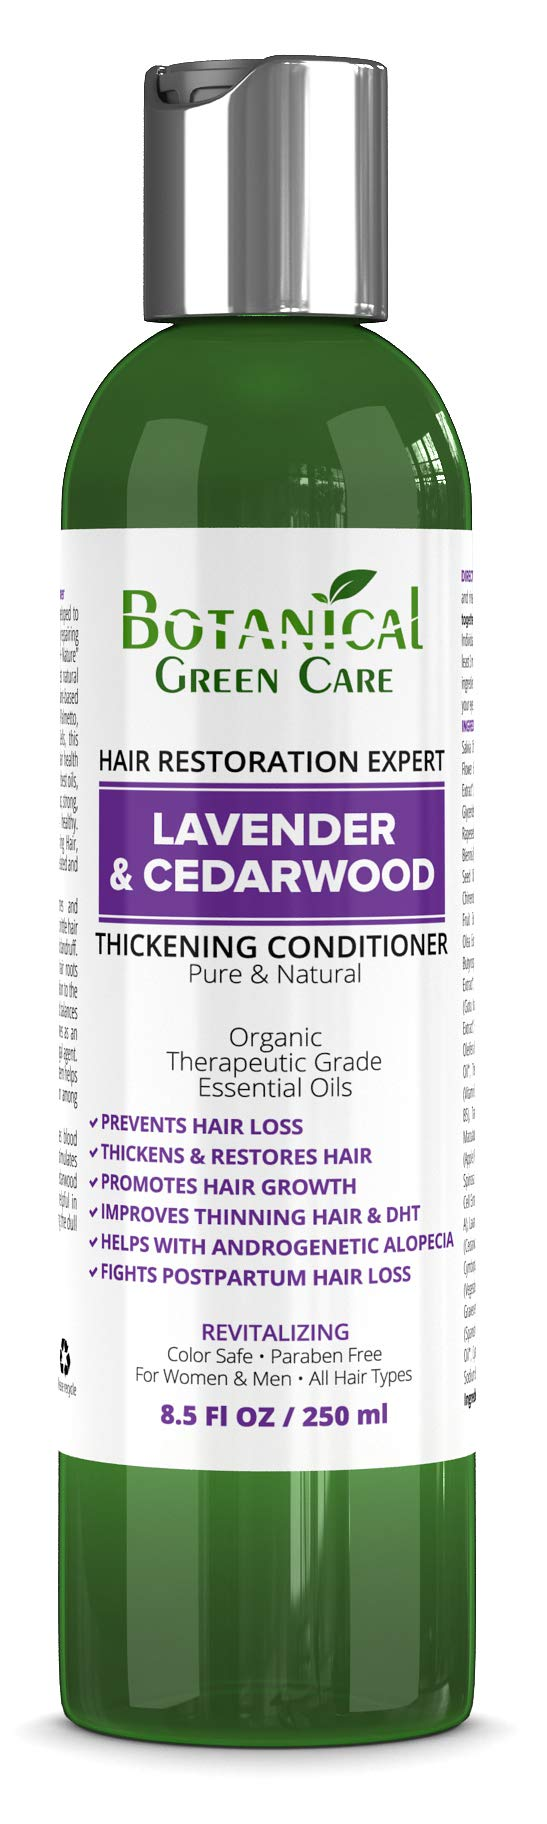 Hair Growth Anti-Hair Loss CONDITIONER ''Lavender & Cedarwood''. Alopecia Prevention and DHT Blocker. Doctor Developed. NEW 2018 FORMULA! by Botanical Green Care